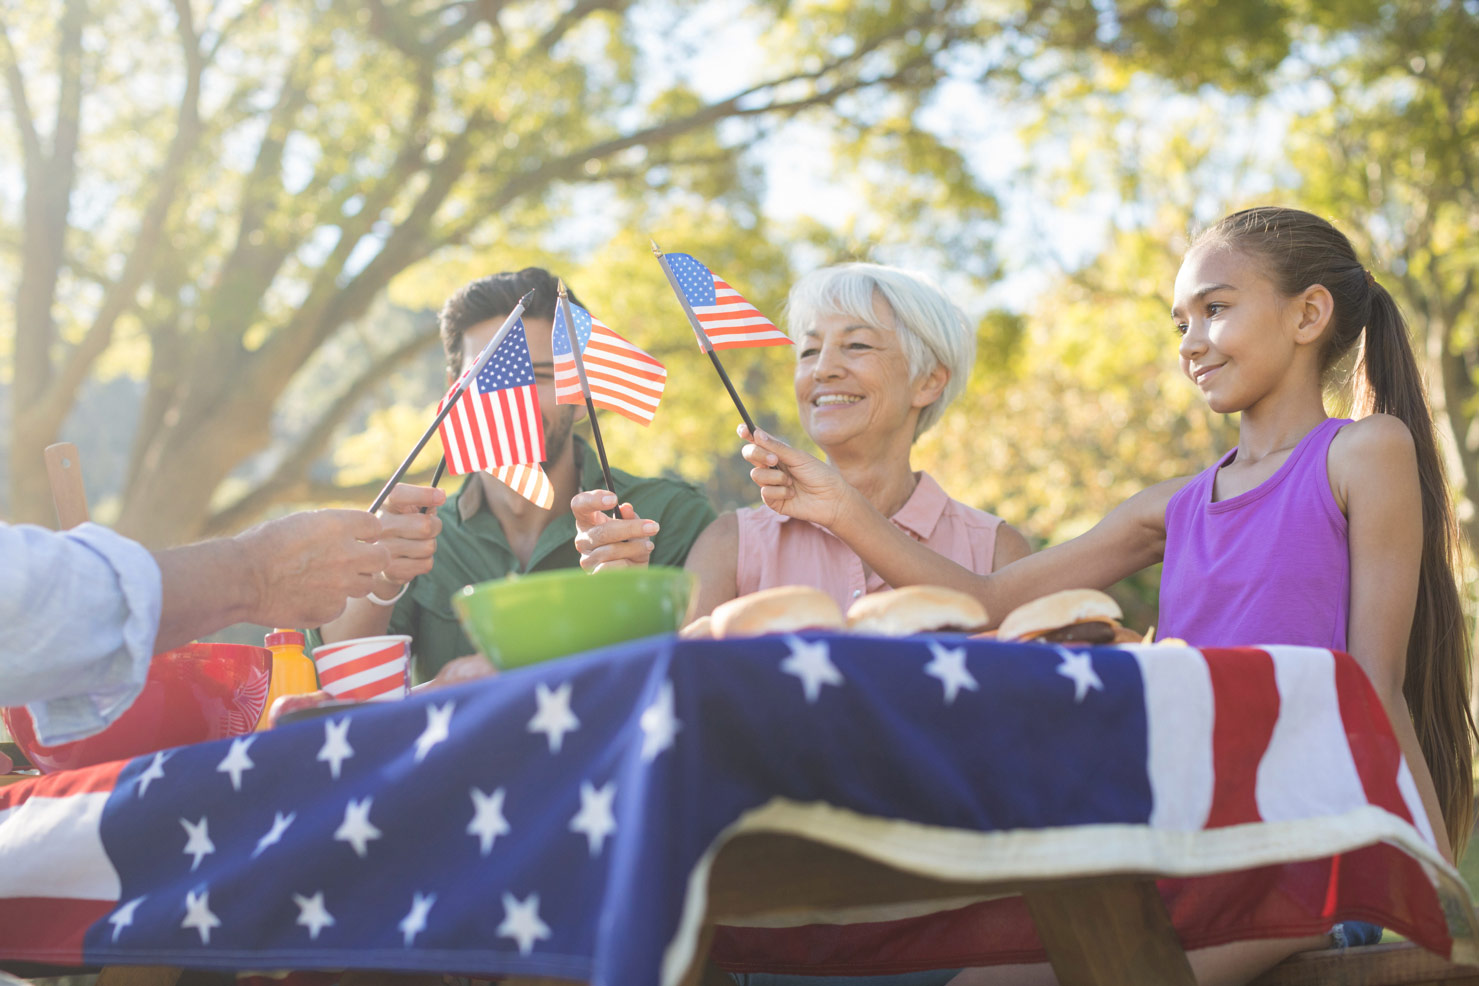 Festive Memorial Day Decorations and Nibbles - Kick Off the Unofficial Start of Summer with Friends and Family